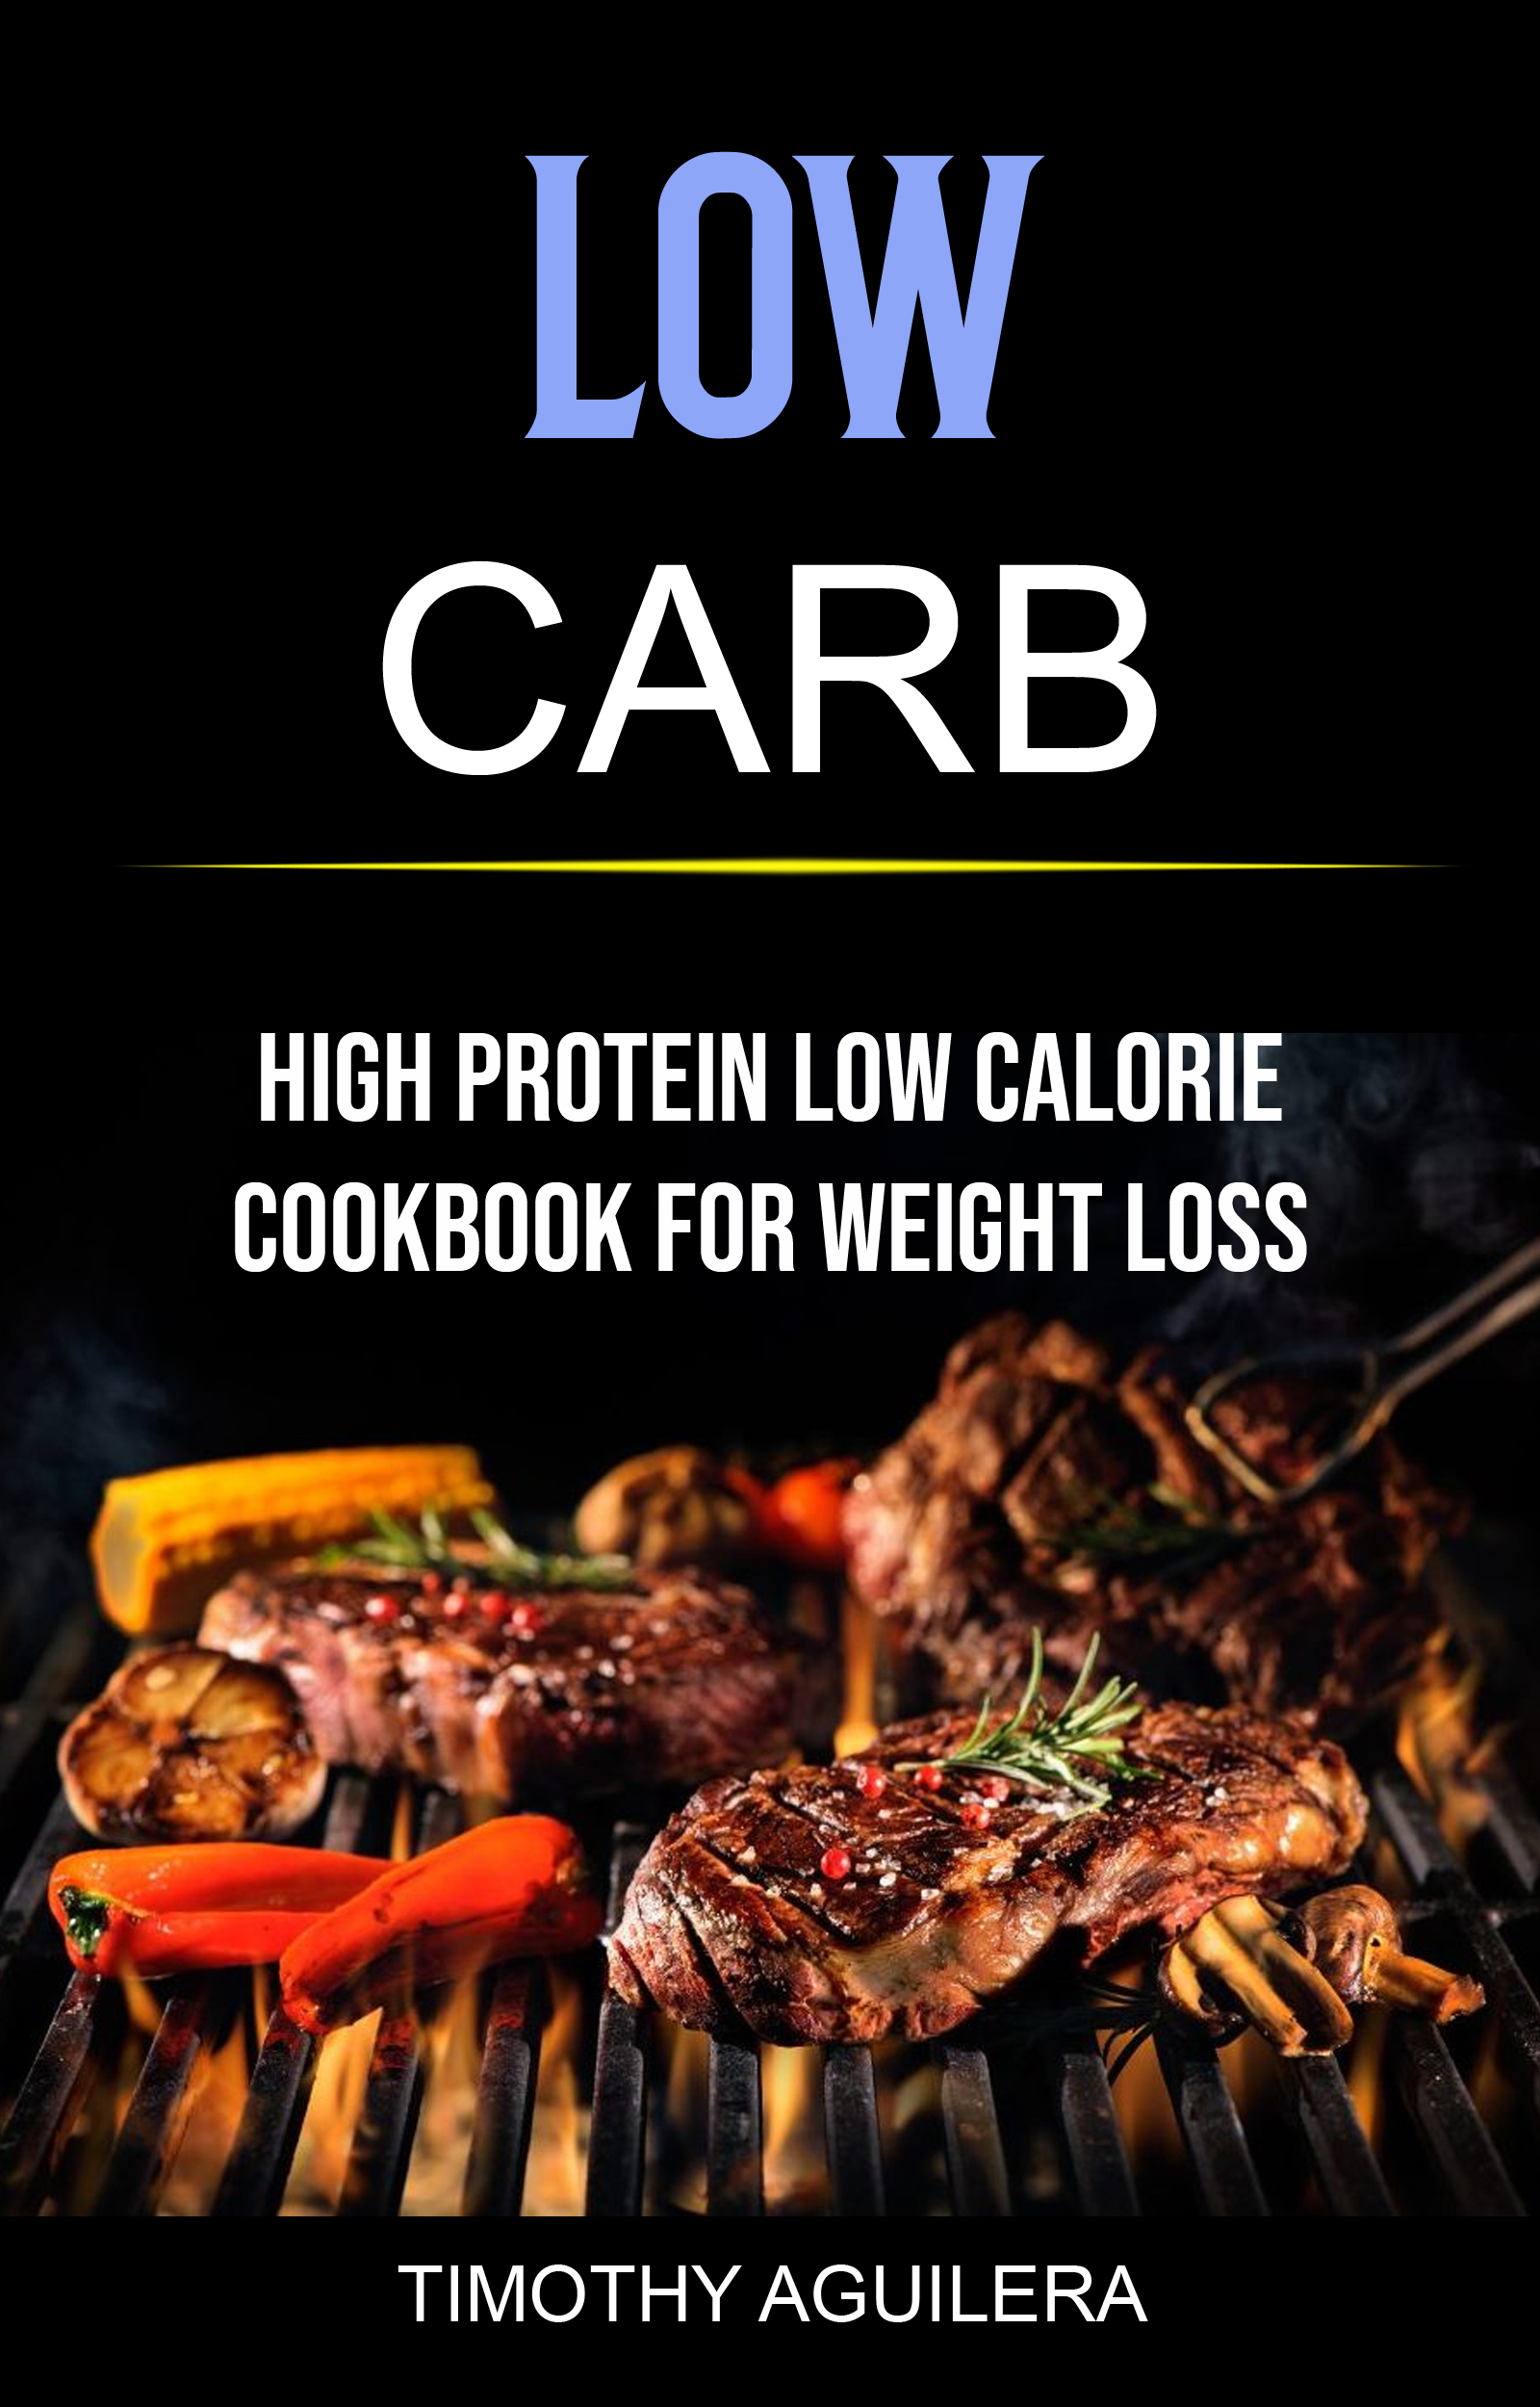 Low carb: high protein low calorie cookbook for weight loss